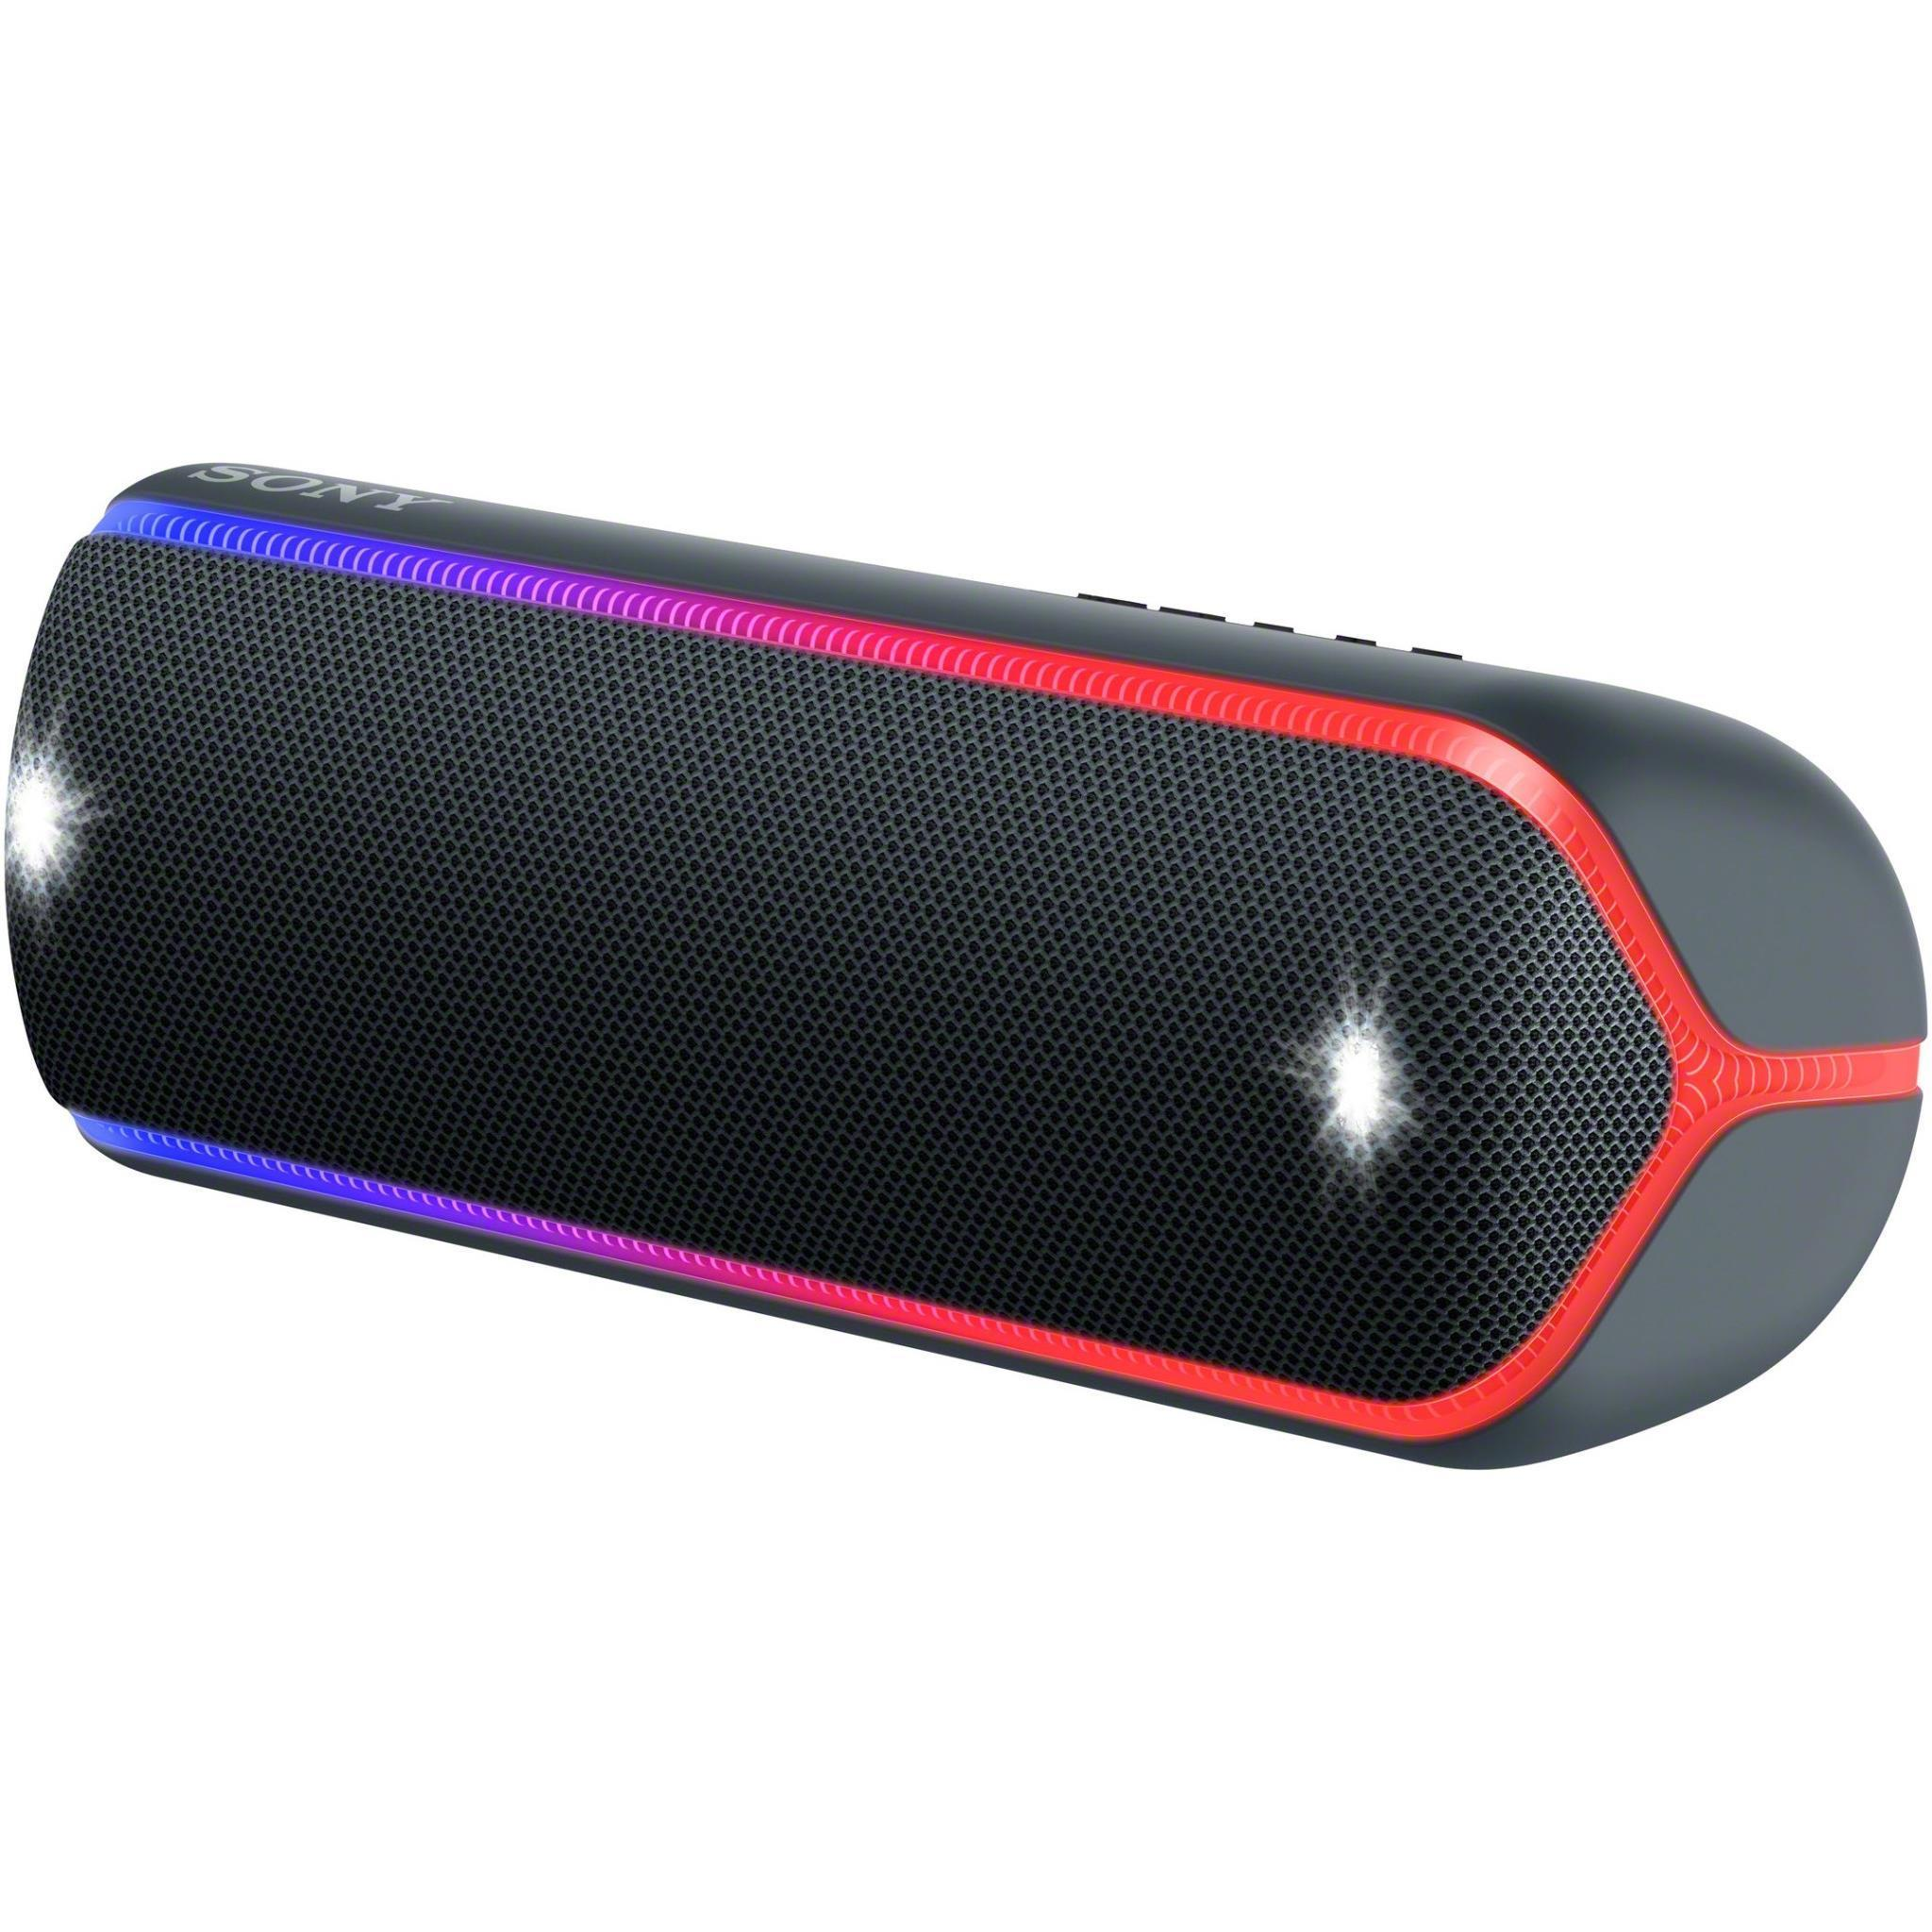 Sony SRSXB32 Extra Bass Portable Bluetooth Speaker (Black)